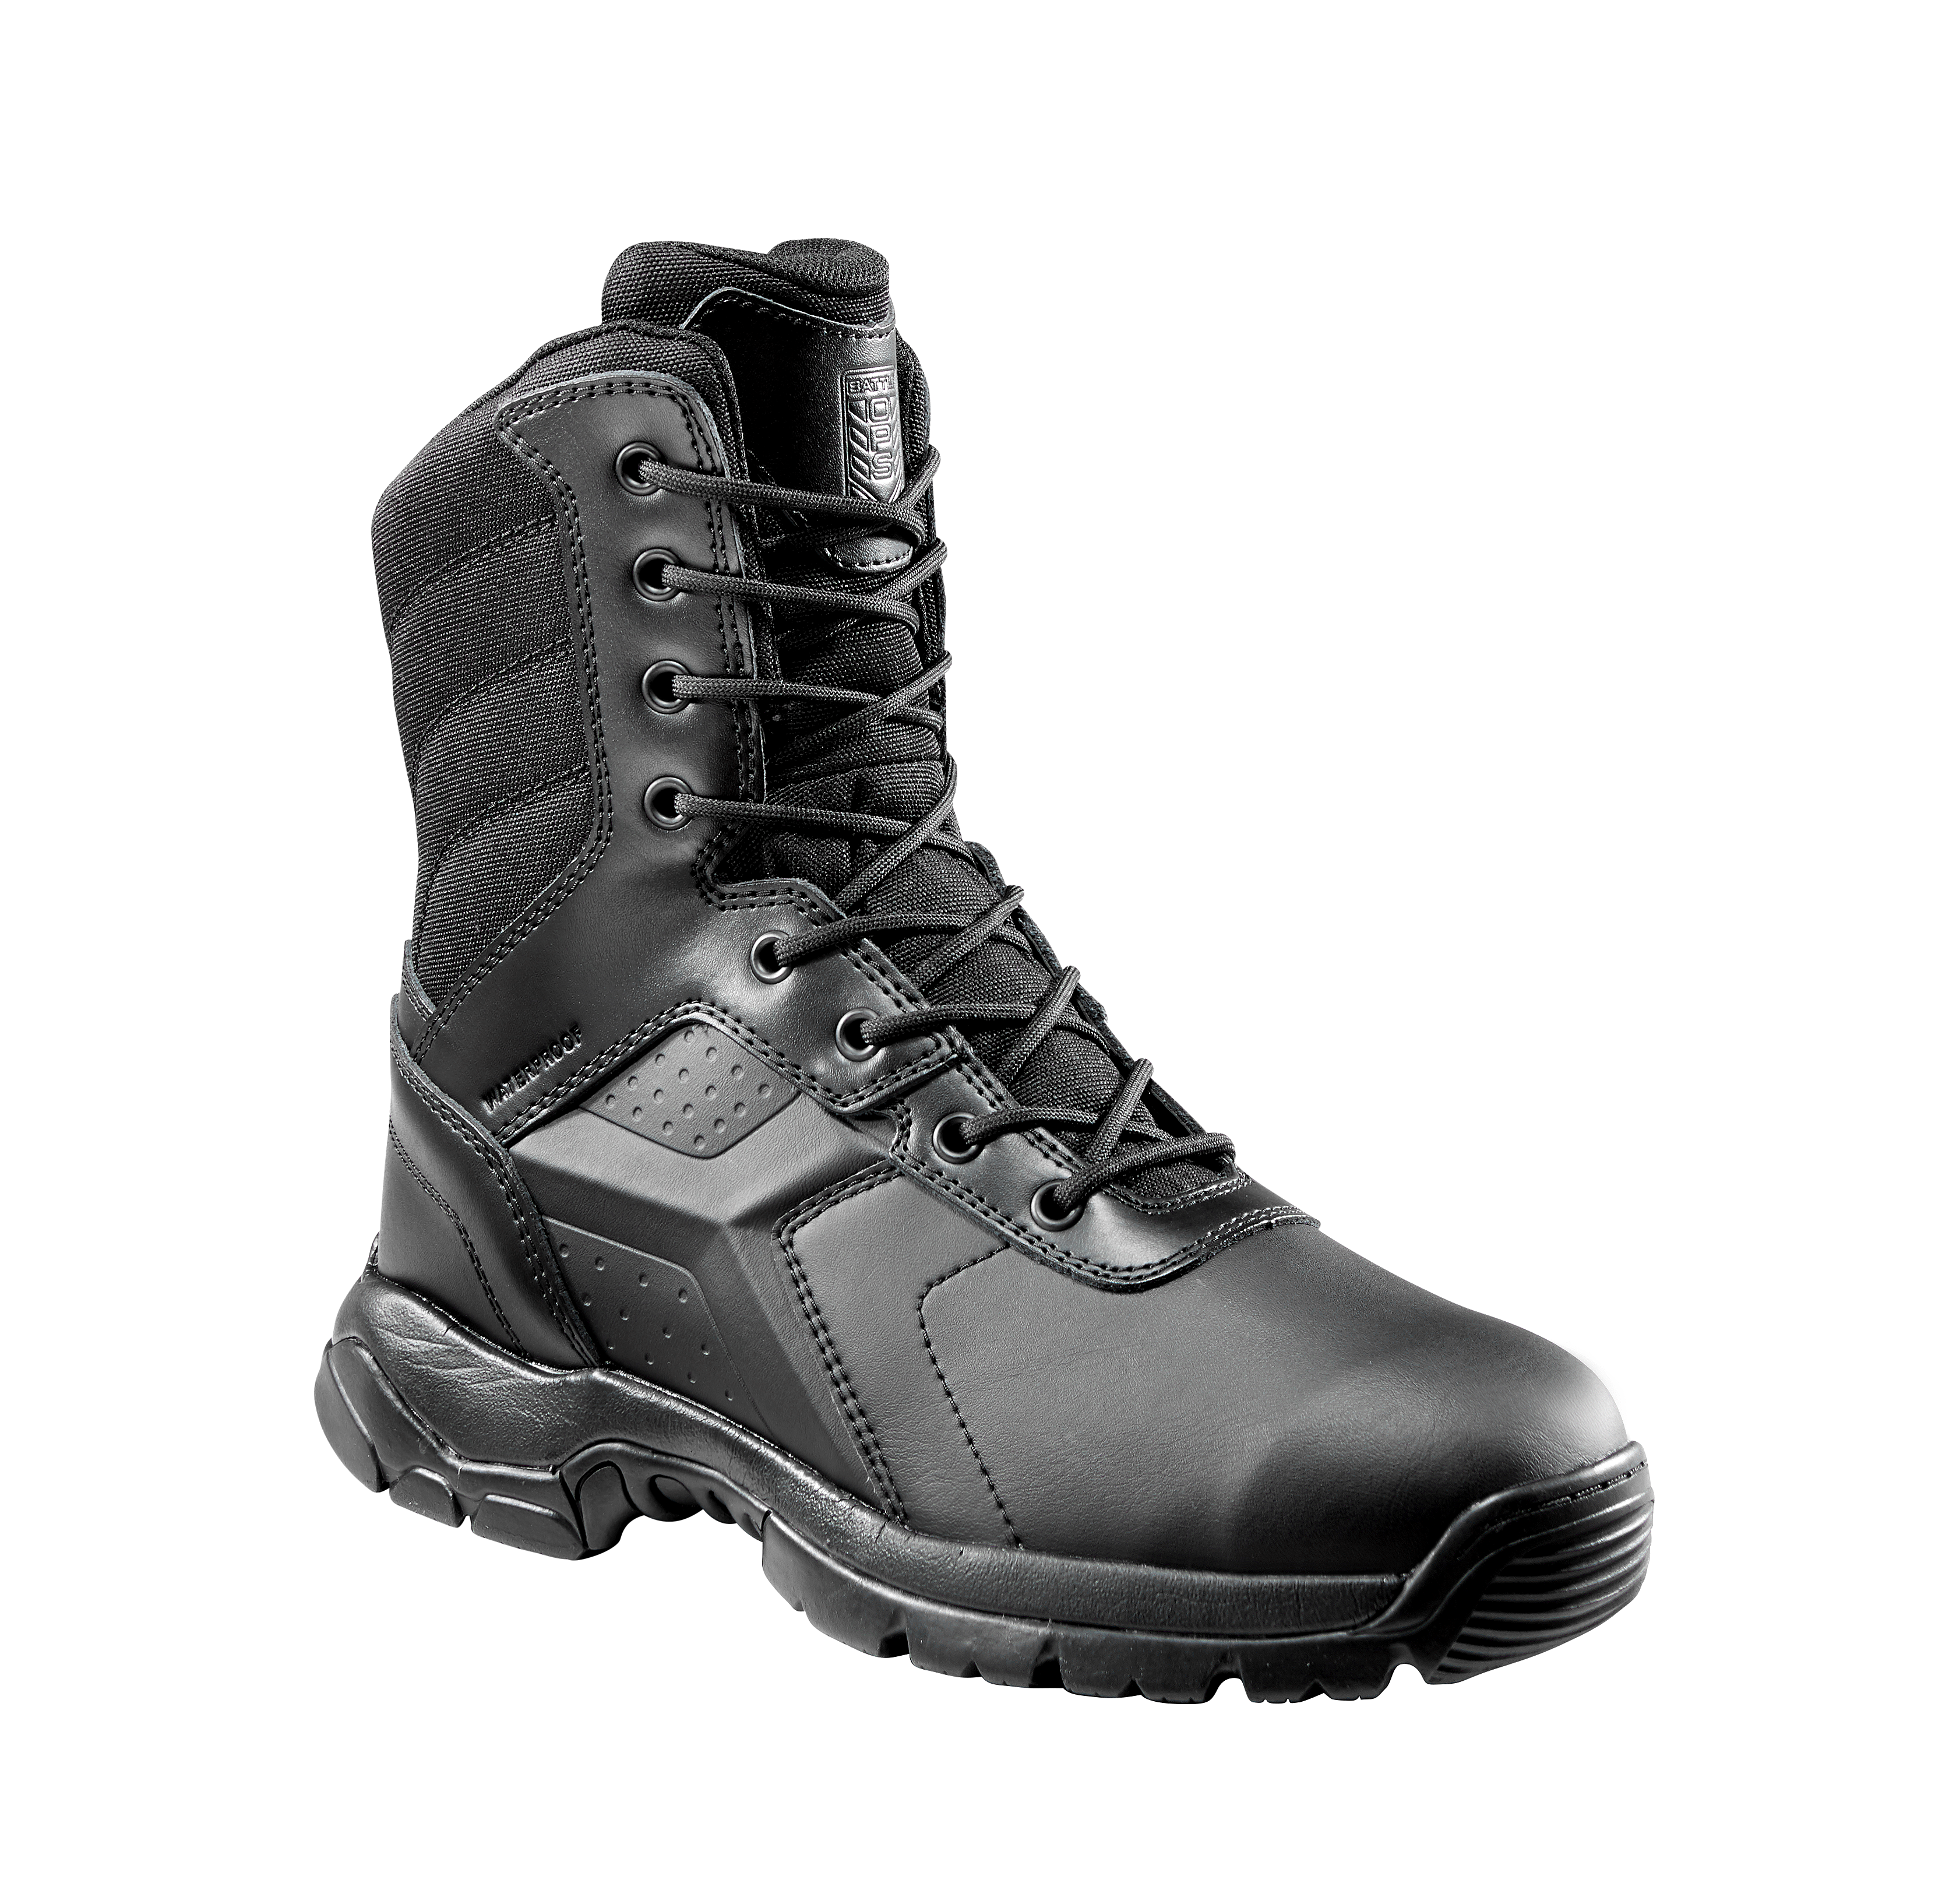 Black Tactical Boot with YKK Zipper Easy On /& Off